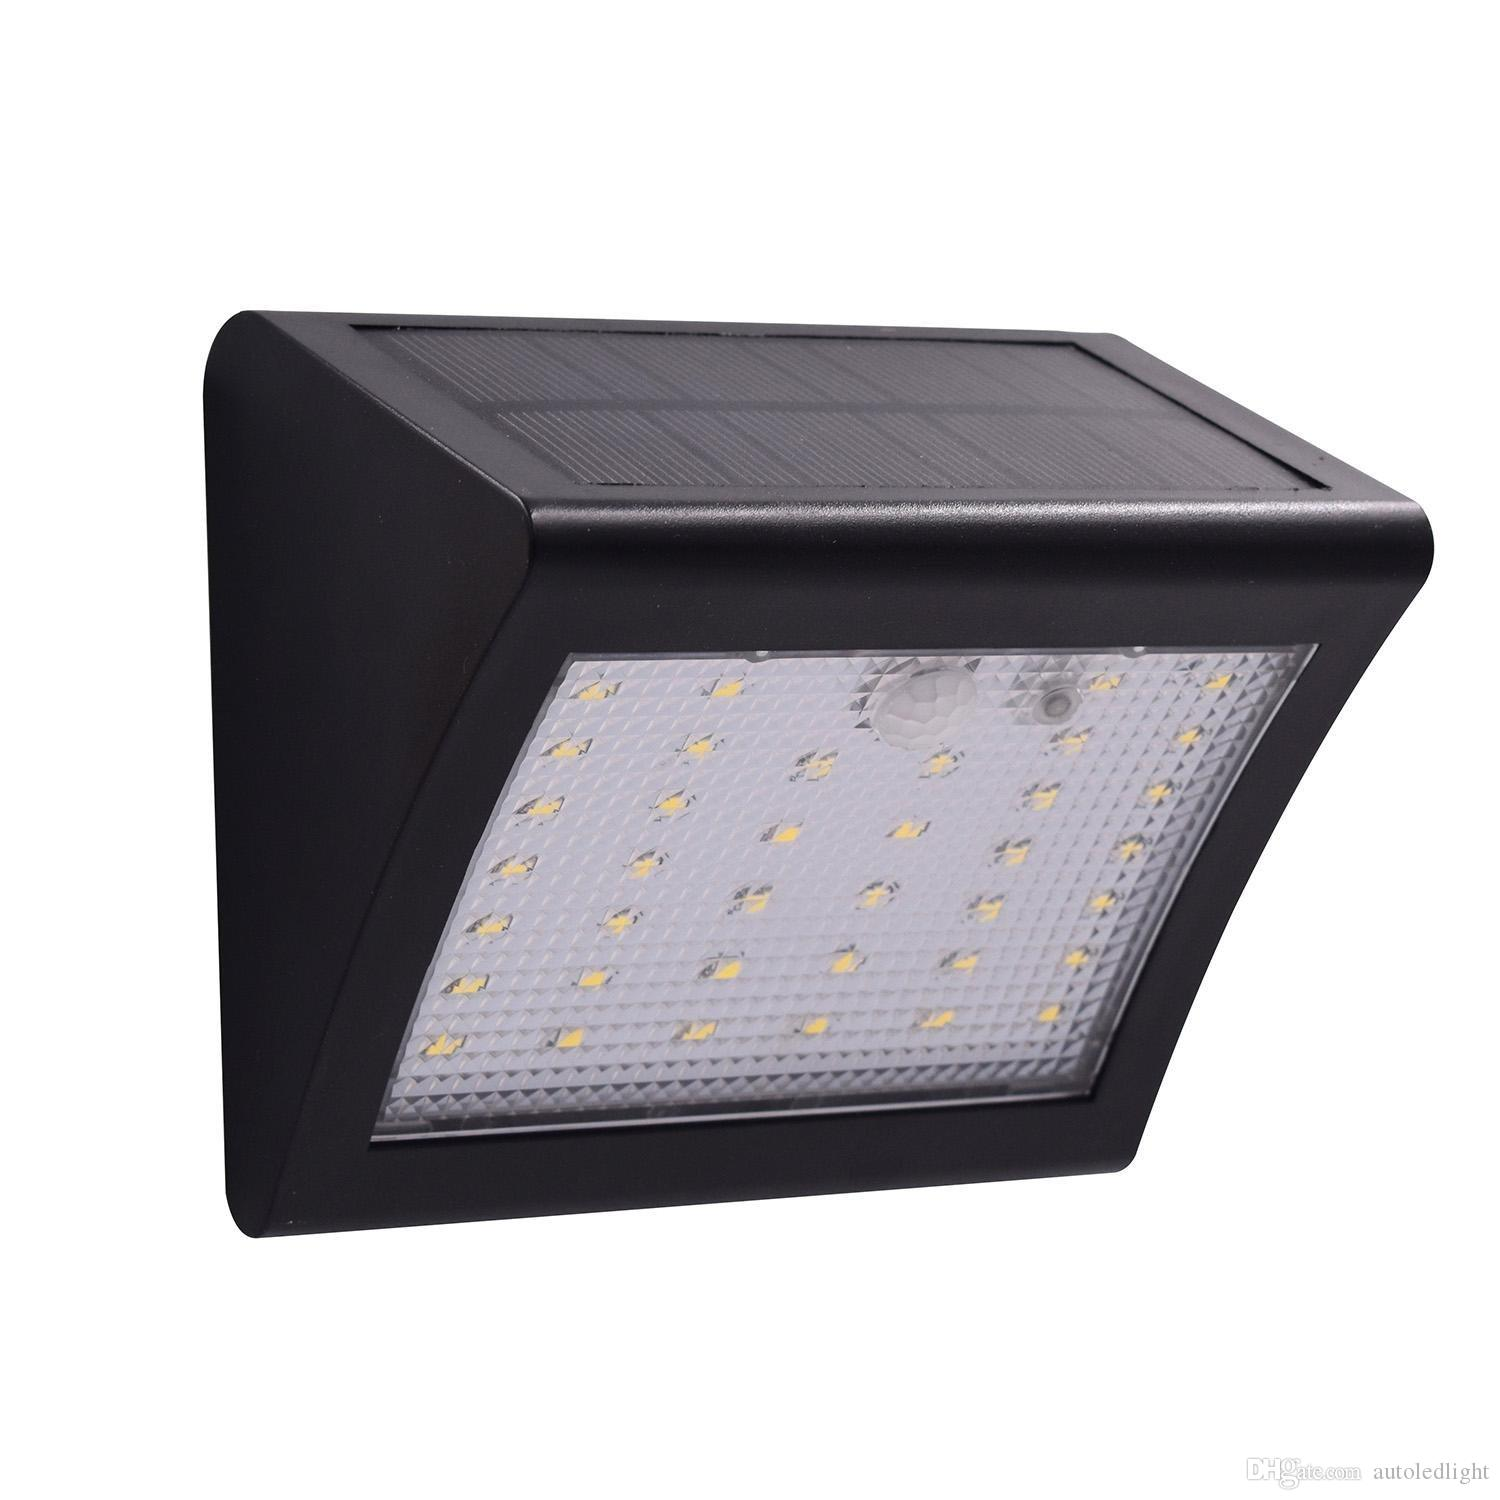 2020 Solar Powered Led Wall Light Outdoor Waterproof Security Lights Pir Motion Sensor Solar Wall Lamp For Garden Patio Driveway Deck Stairs From Autoledlight 8 7 Dhgate Com